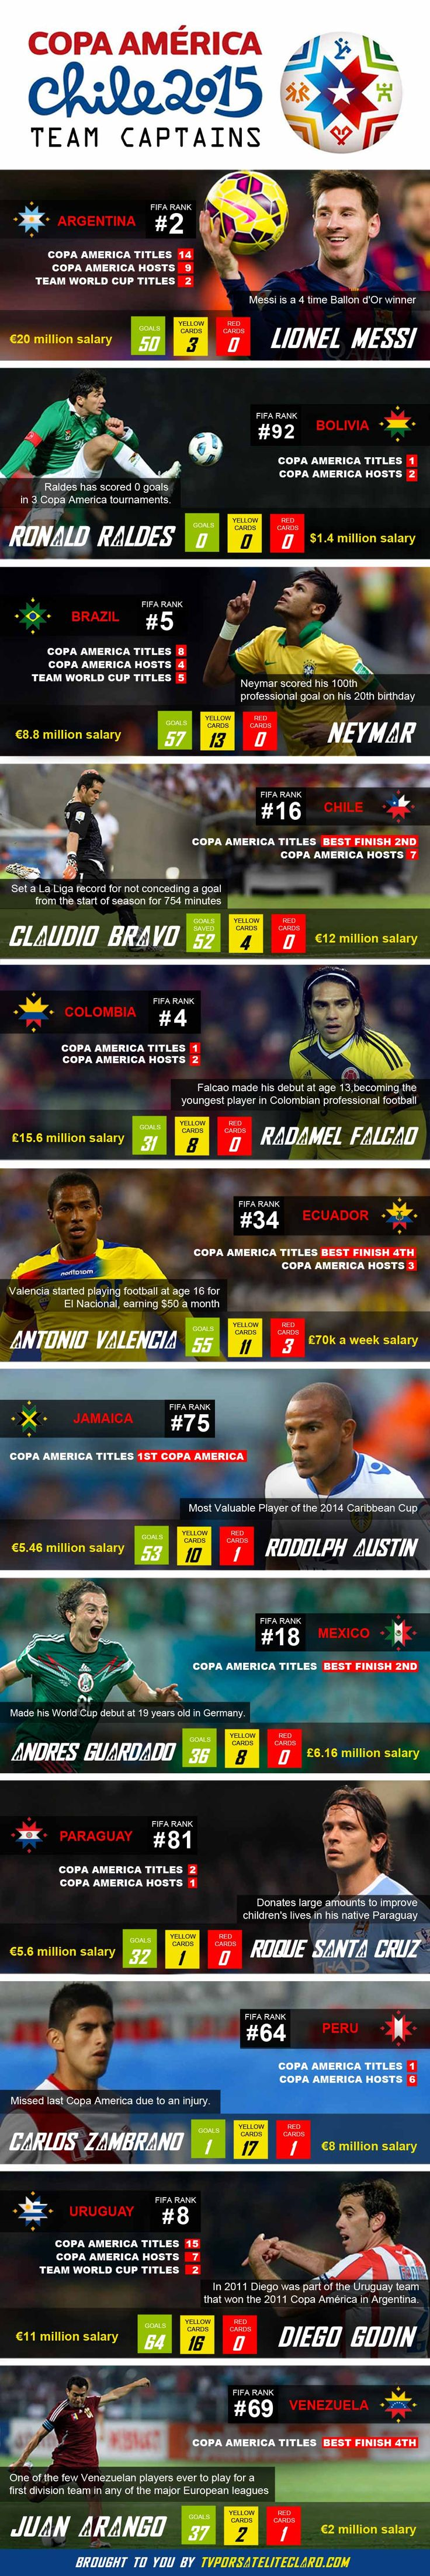 Discover some interesting stats about the 12 team captains playing this year in Copa America Chile 2015.  Enjoy!